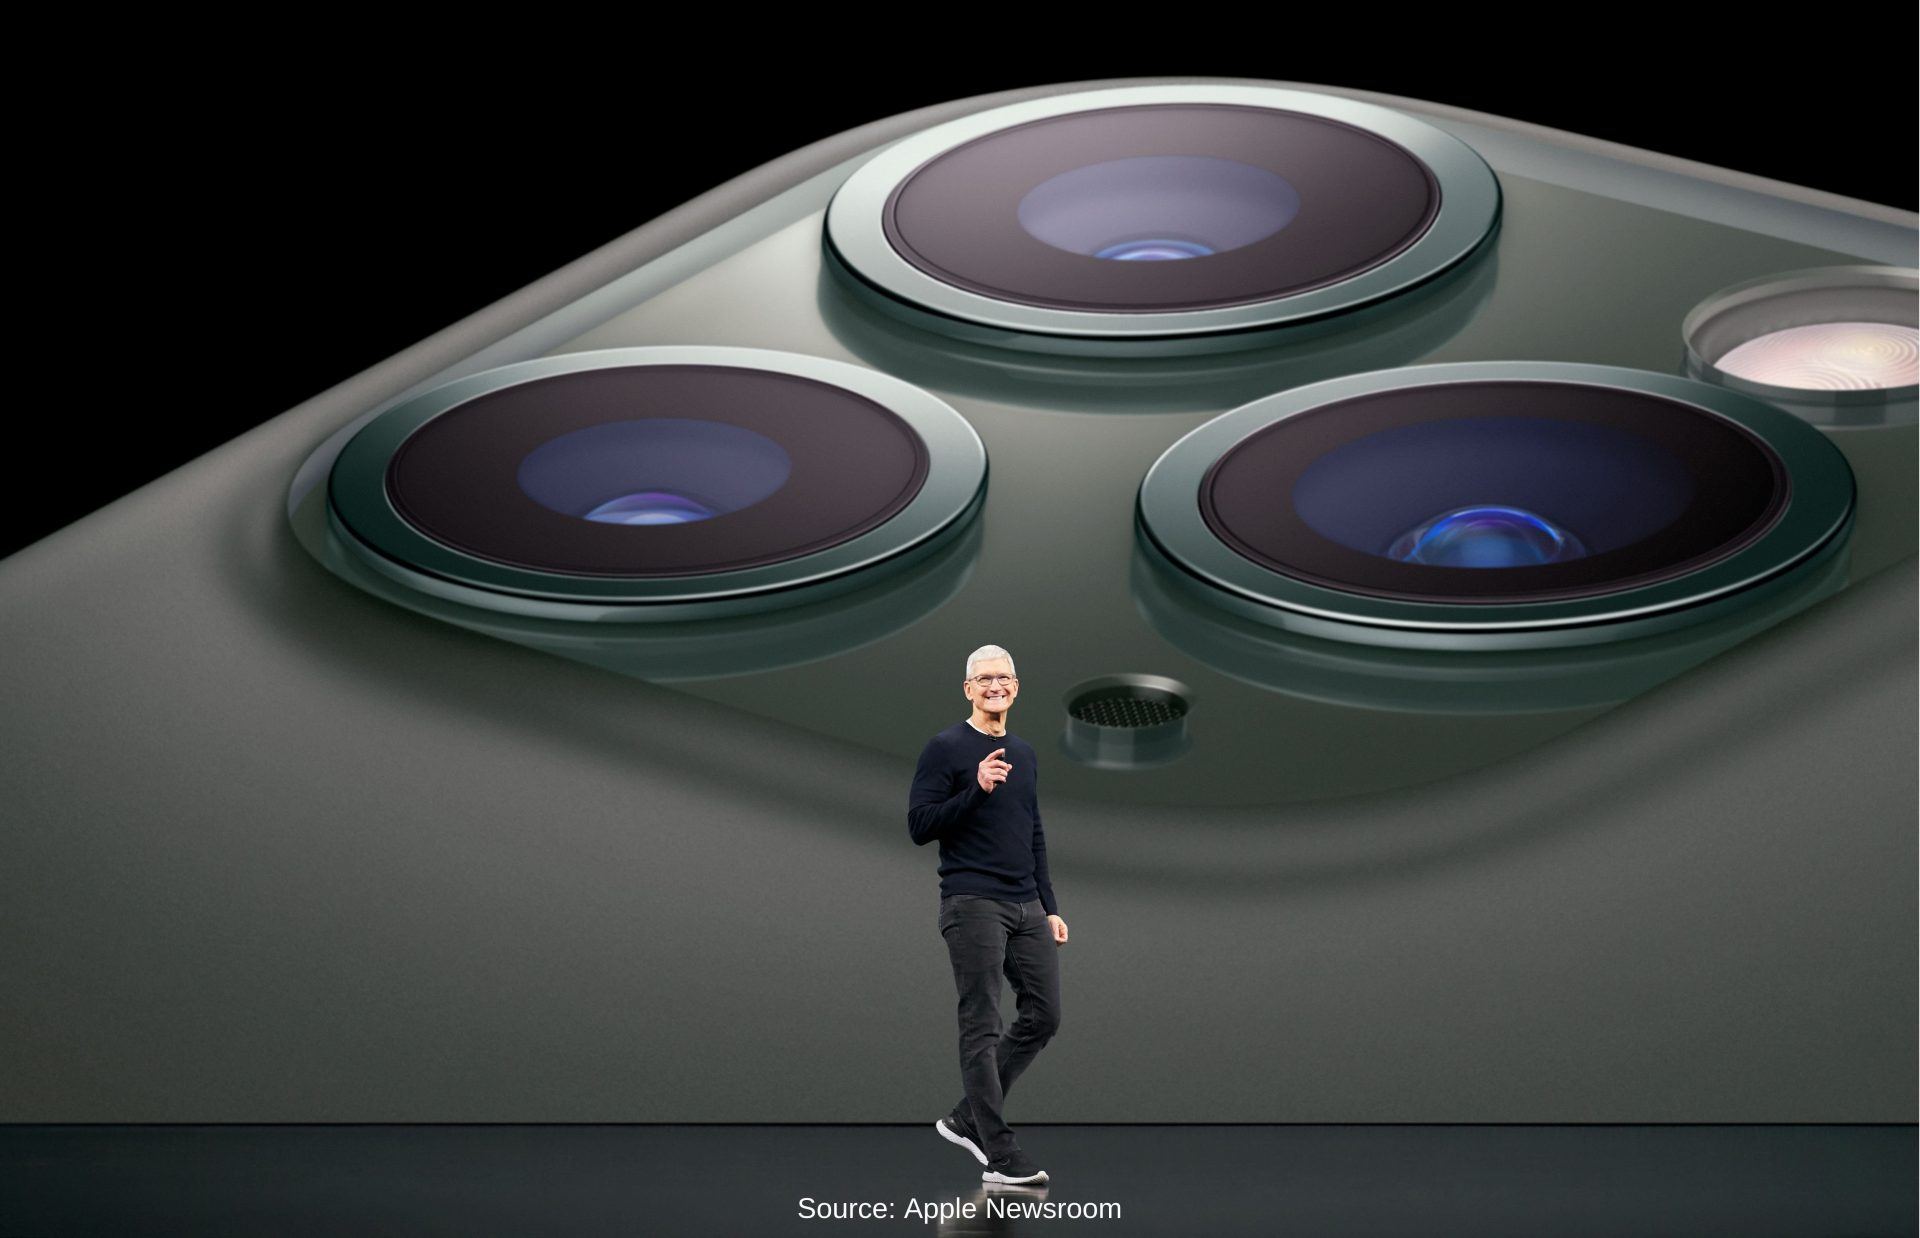 Tim Cook on stage at Apple's September 10, 2019 event.